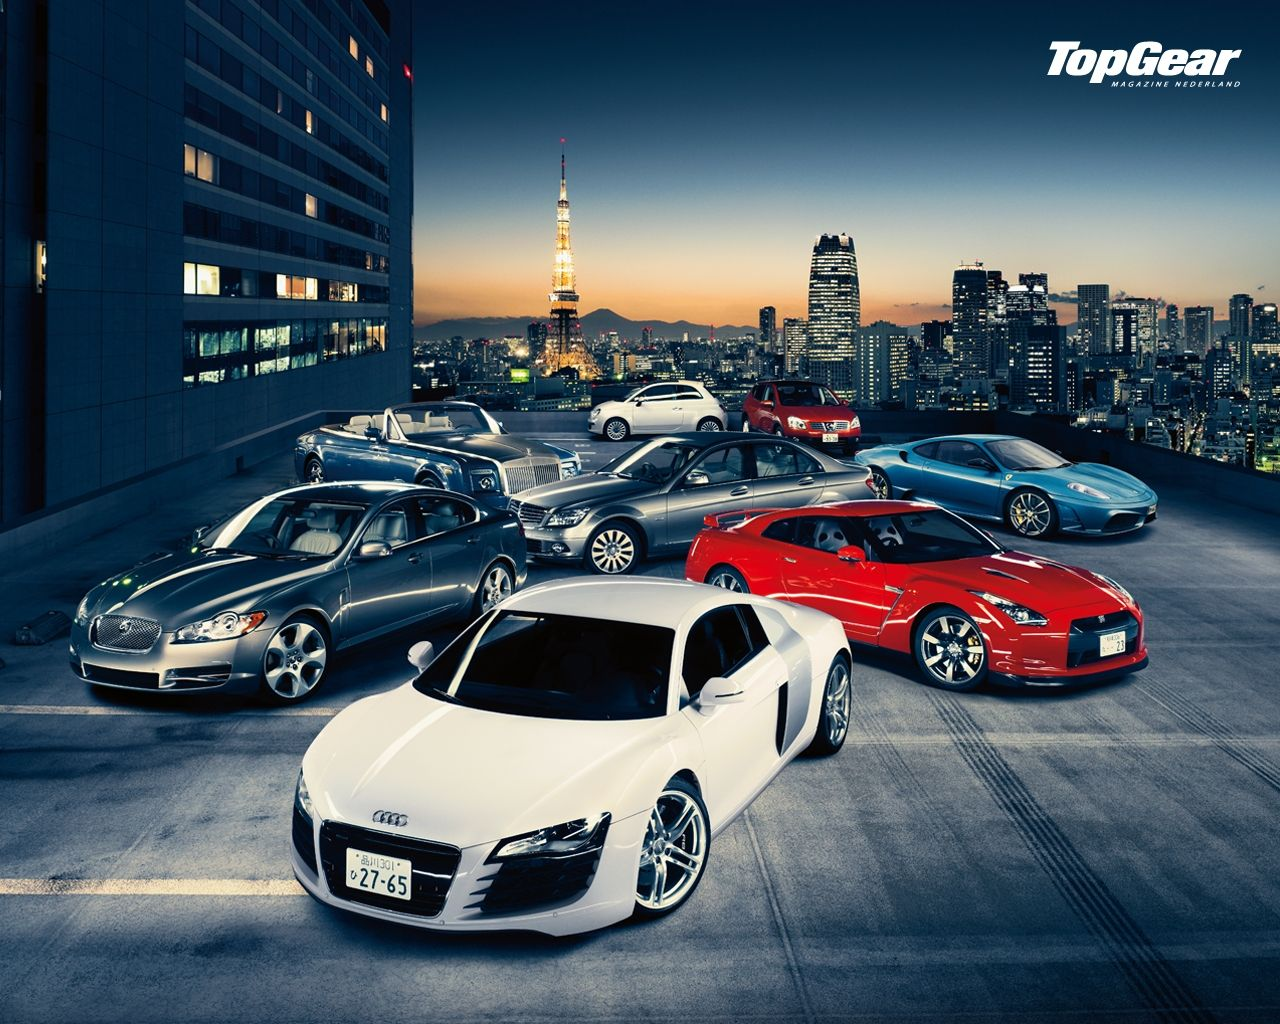 Topgear Top Gear Nissan Cars Car Wallpapers